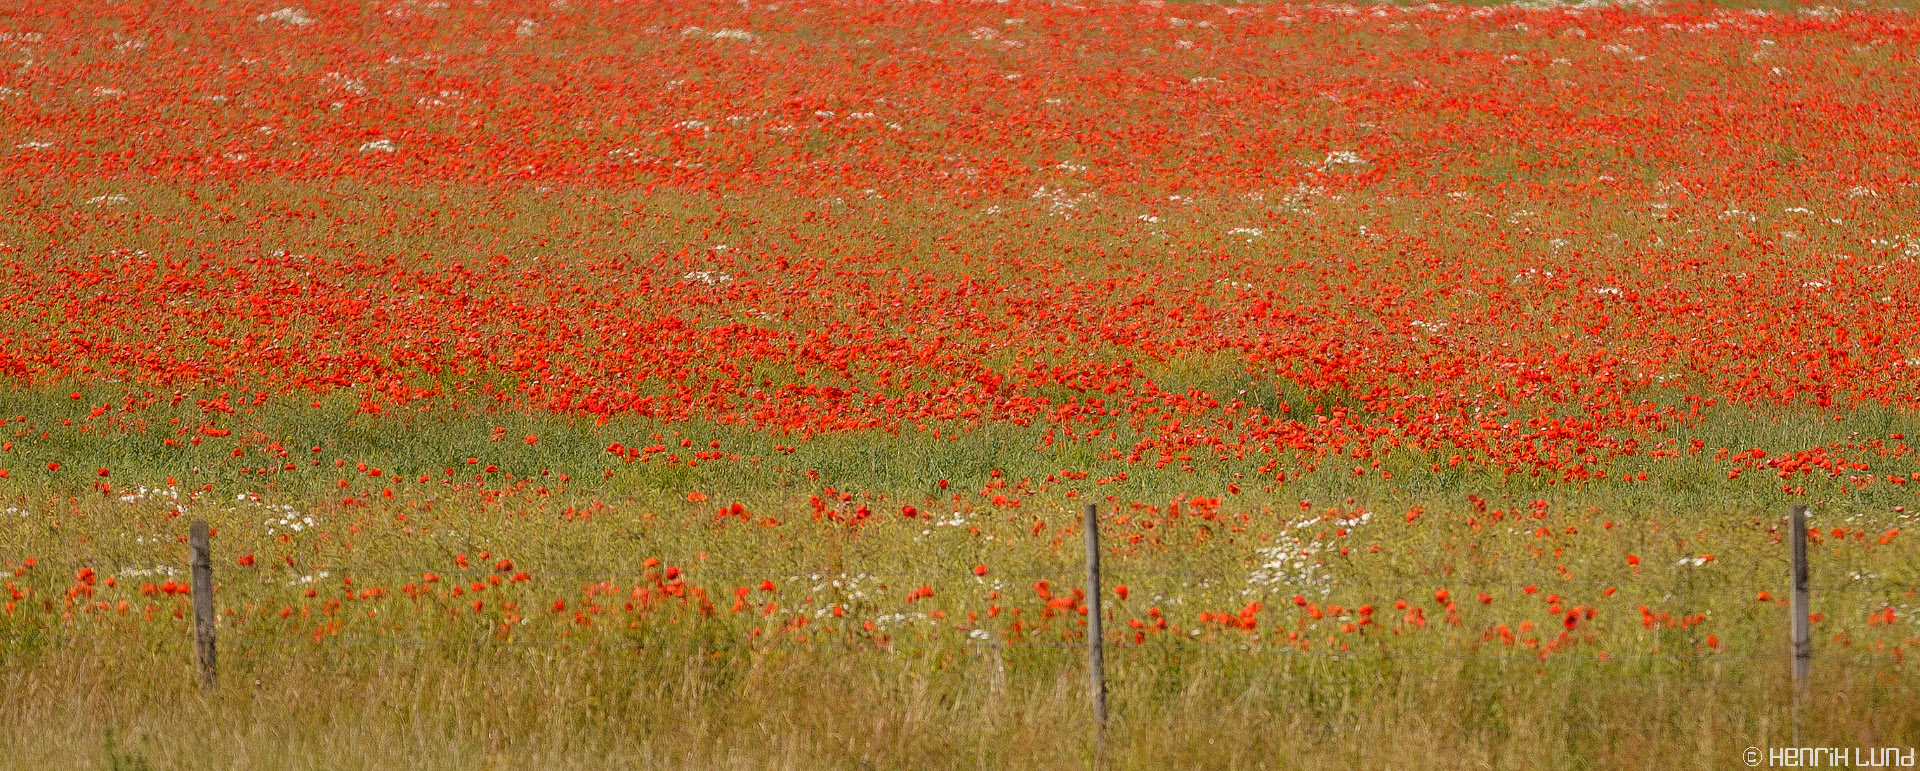 A field of red papavers in southern part of Gotland, Sweden, July, 2013.